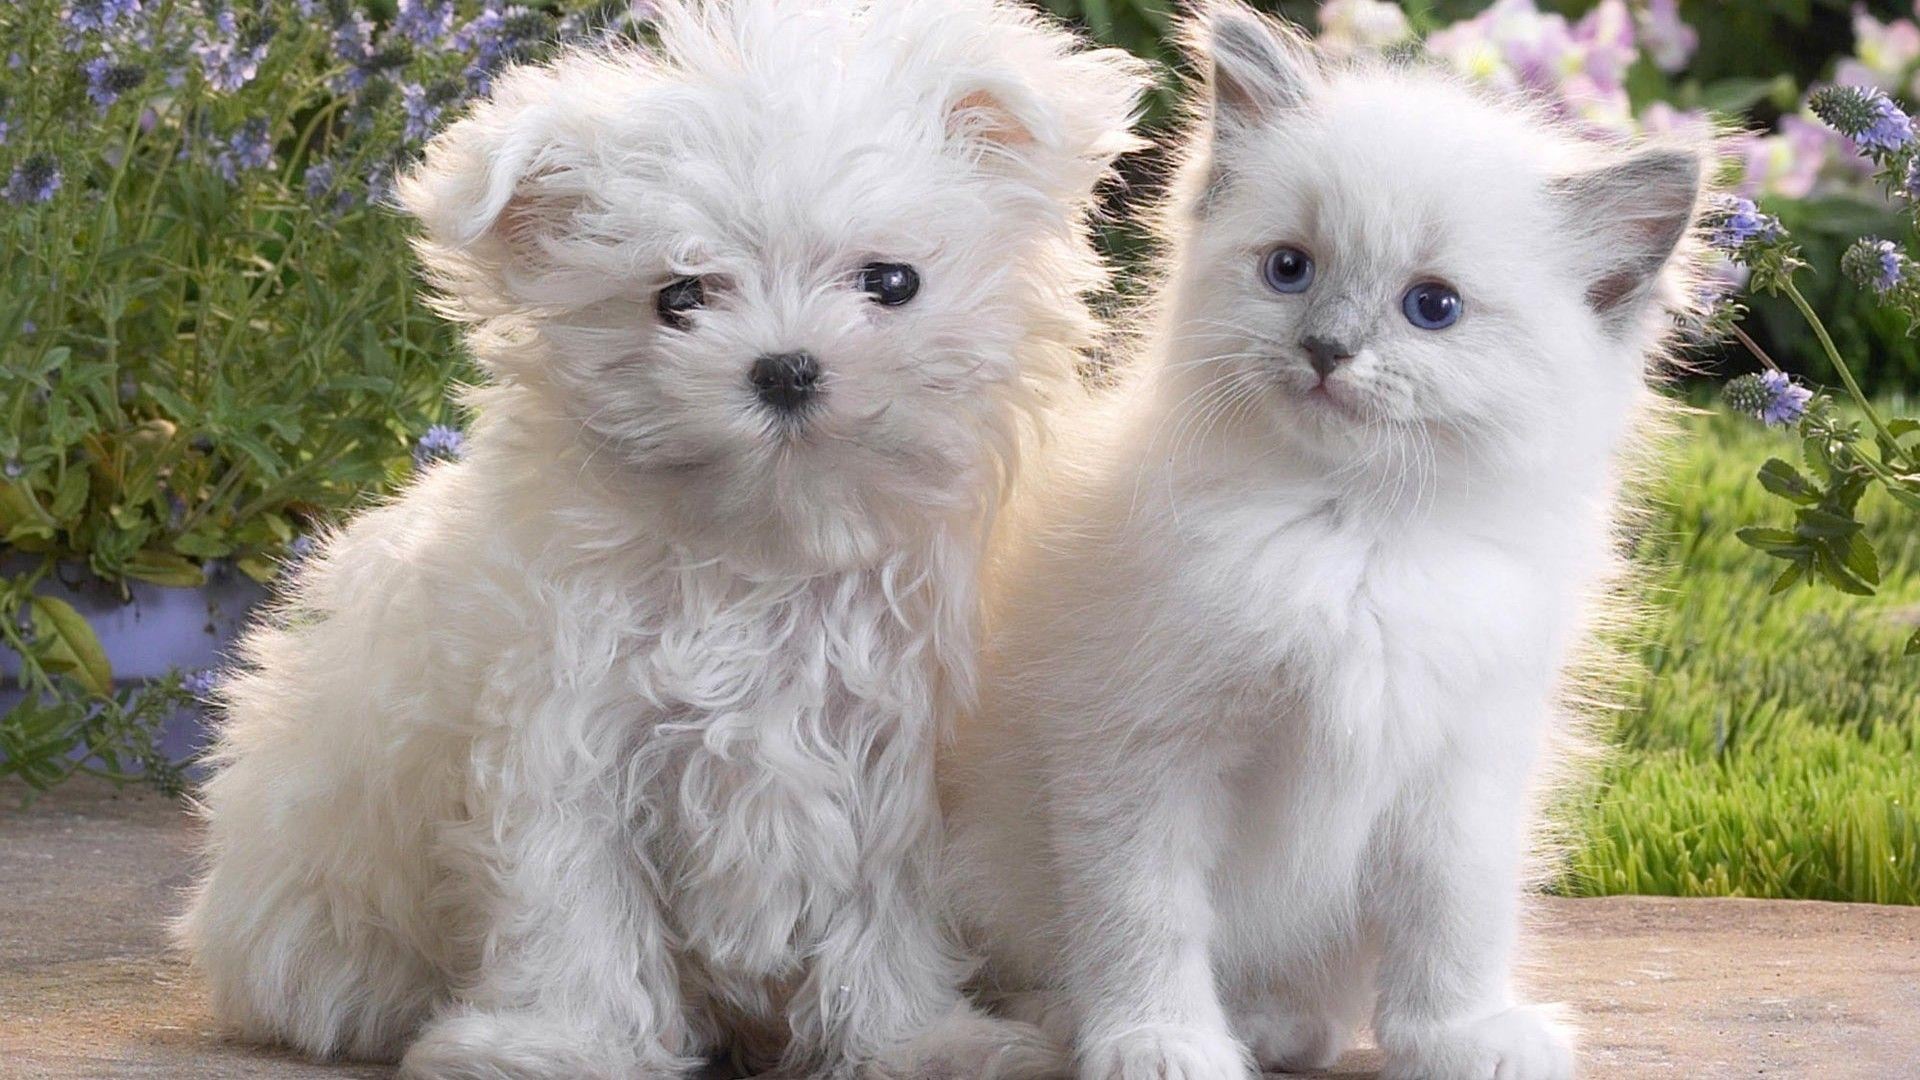 Free Wallpapers Of Kittens And Puppies The Cutest Puppies